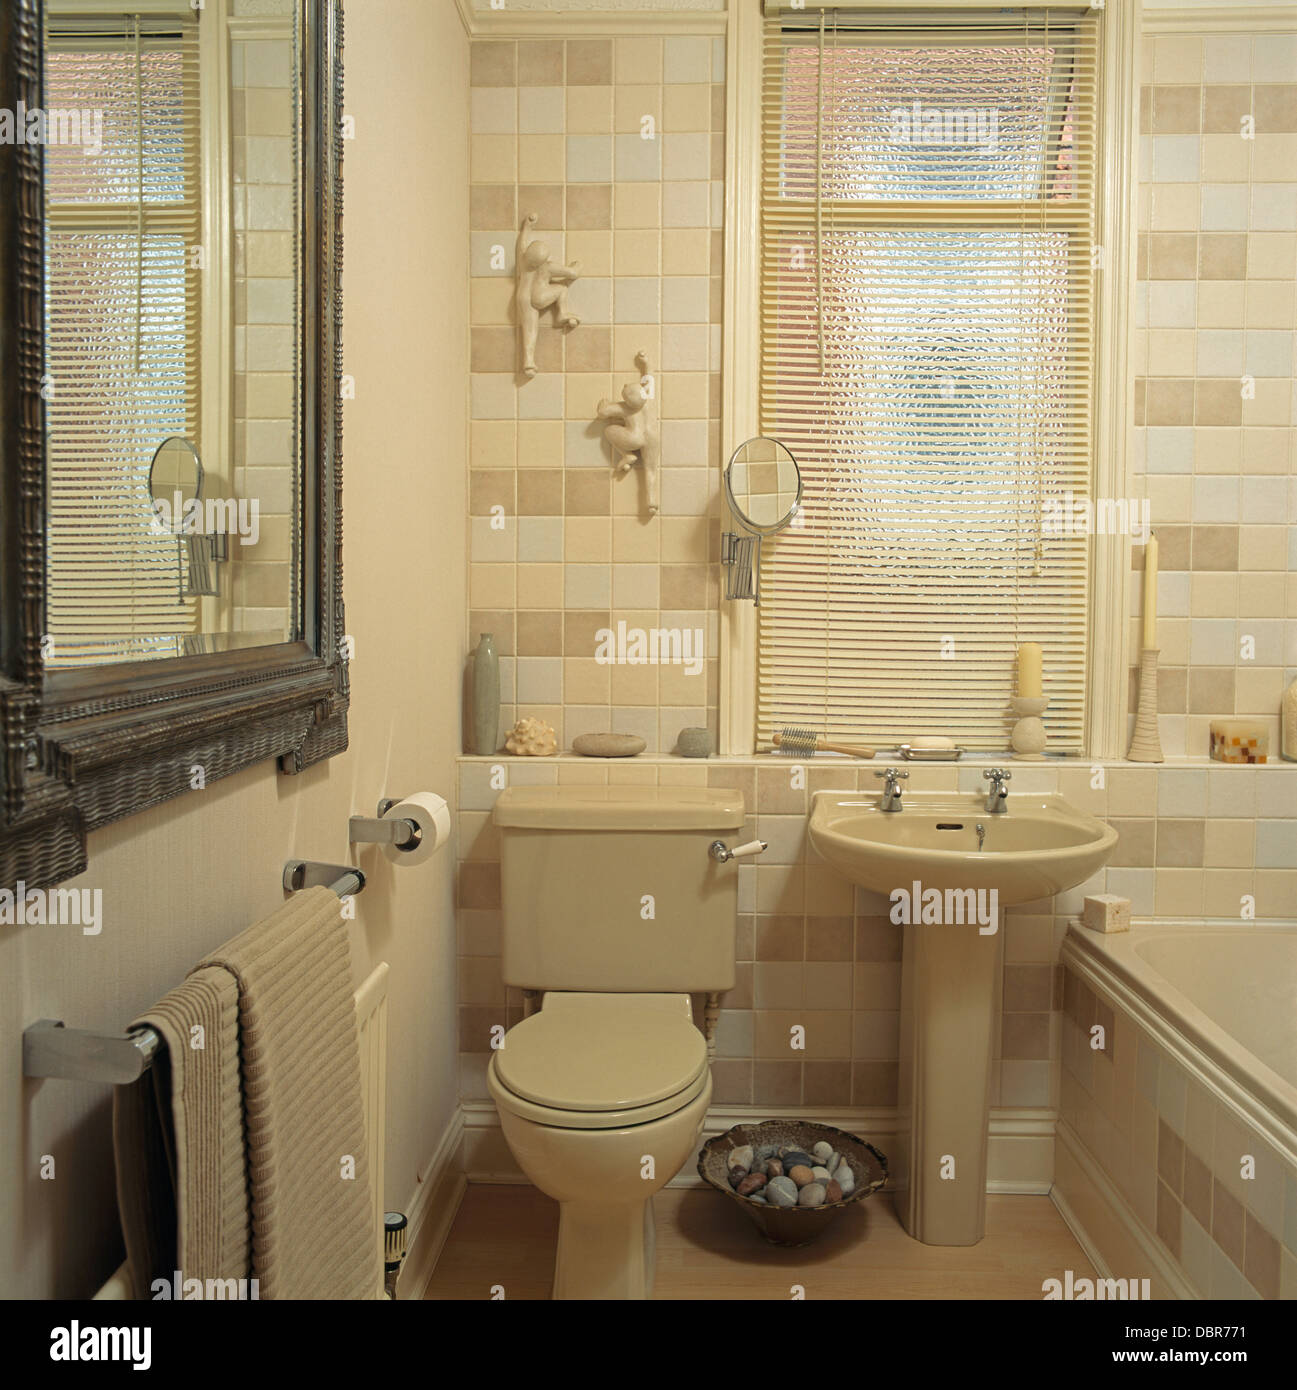 Bathroom Window Above Sink venetian blind on window above cream pedestal basin and toilet in